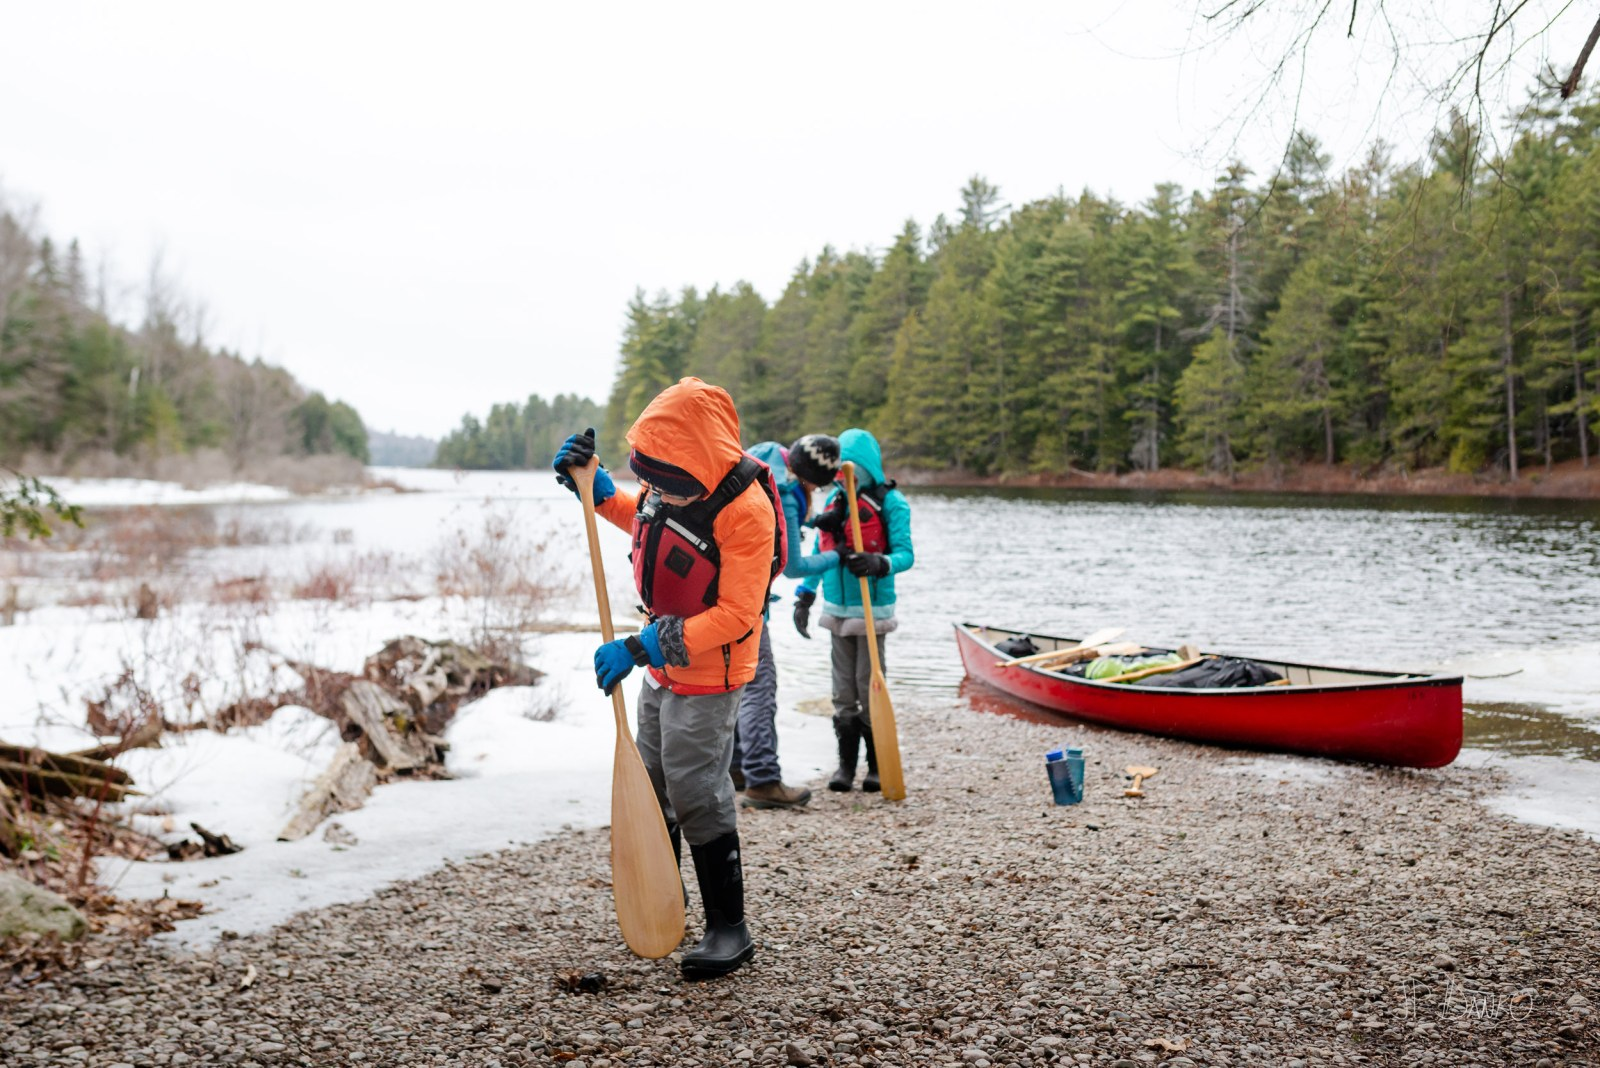 Family Packing Spring Red Canoe Trip Backcountry Wilderness